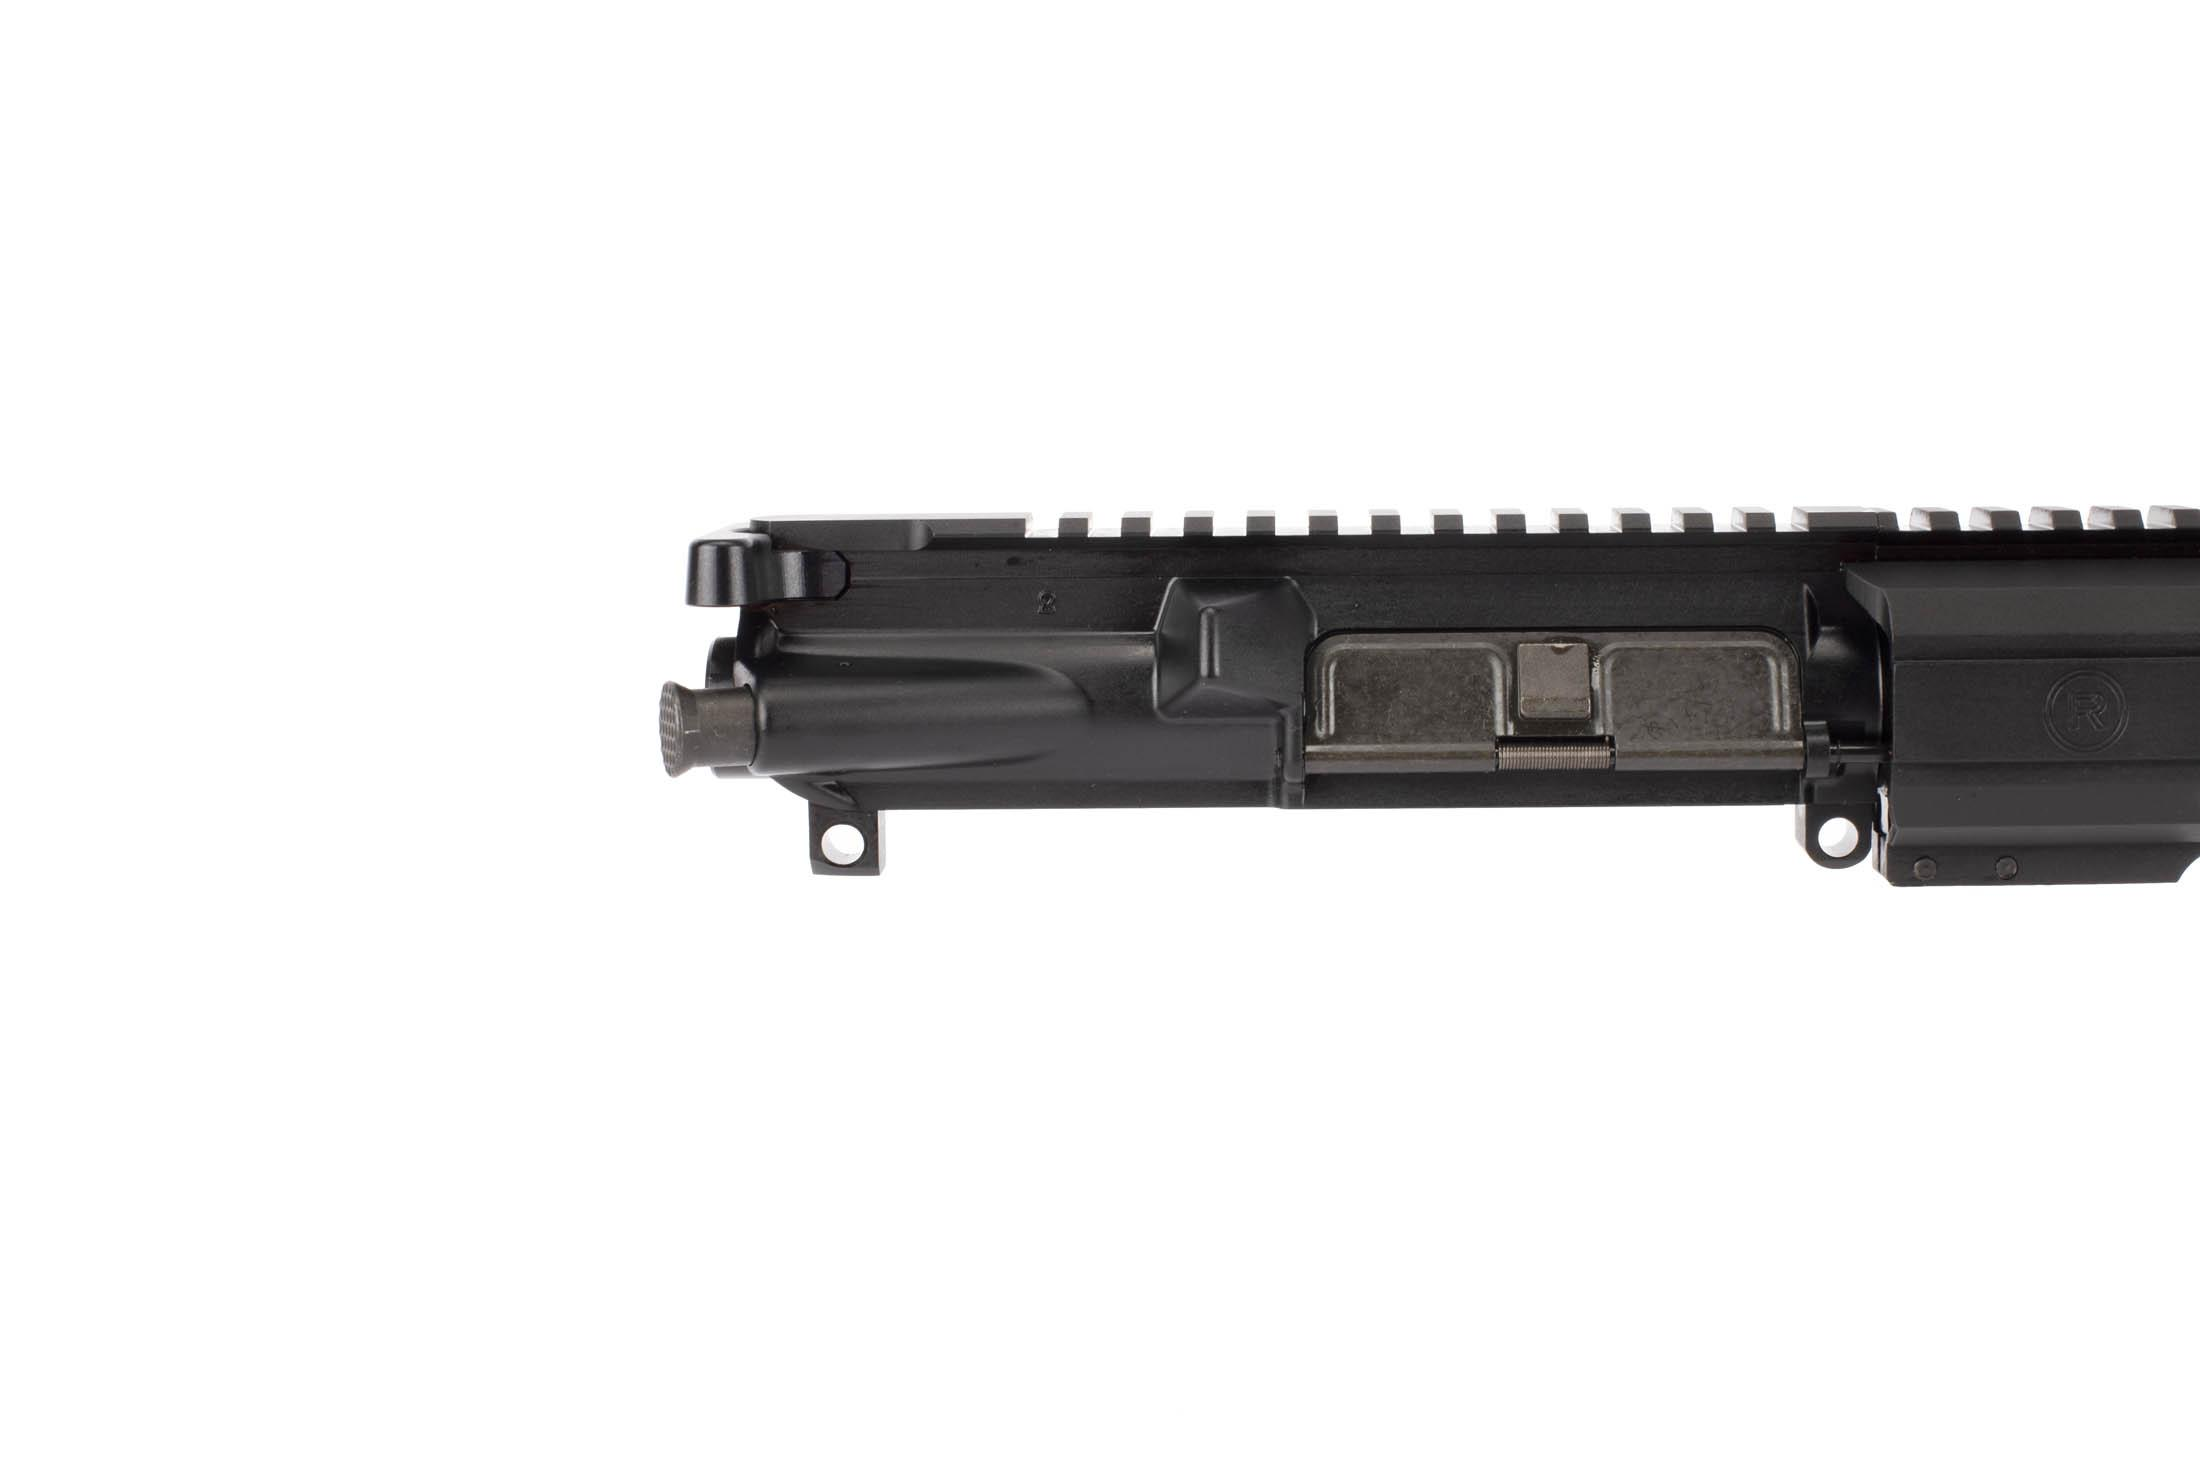 Radical Firearms 16in complete AR-15 upper in 5.56 NATO has an optics ready flat top A4 style receiver.